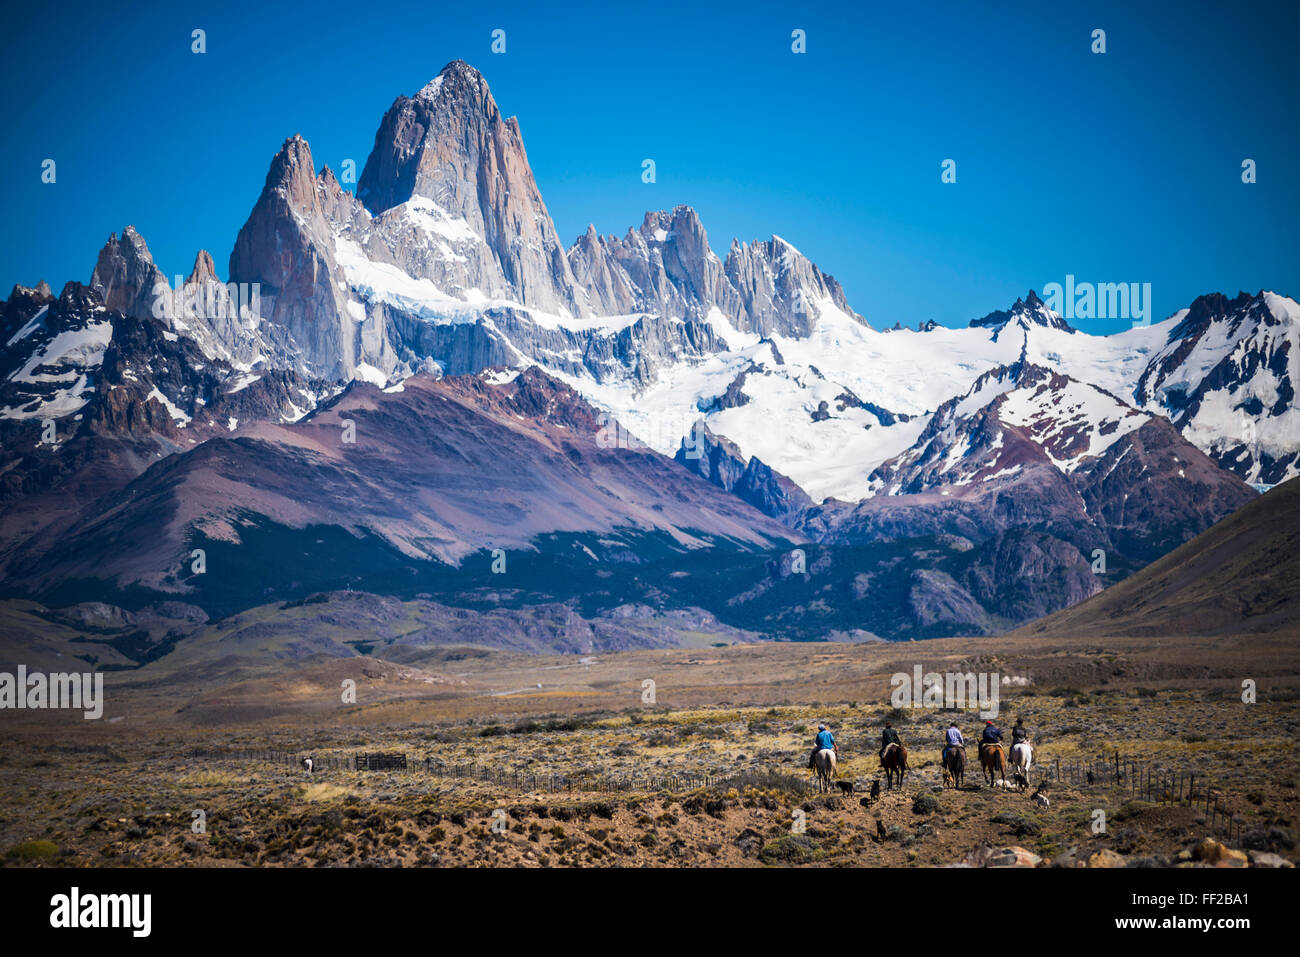 Gauchos riding horses and herding sheep with Mount Fitz Roy behind, UNESCO WorRMd Heritage Site, ERM ChaRMten, Patagonia, - Stock Image